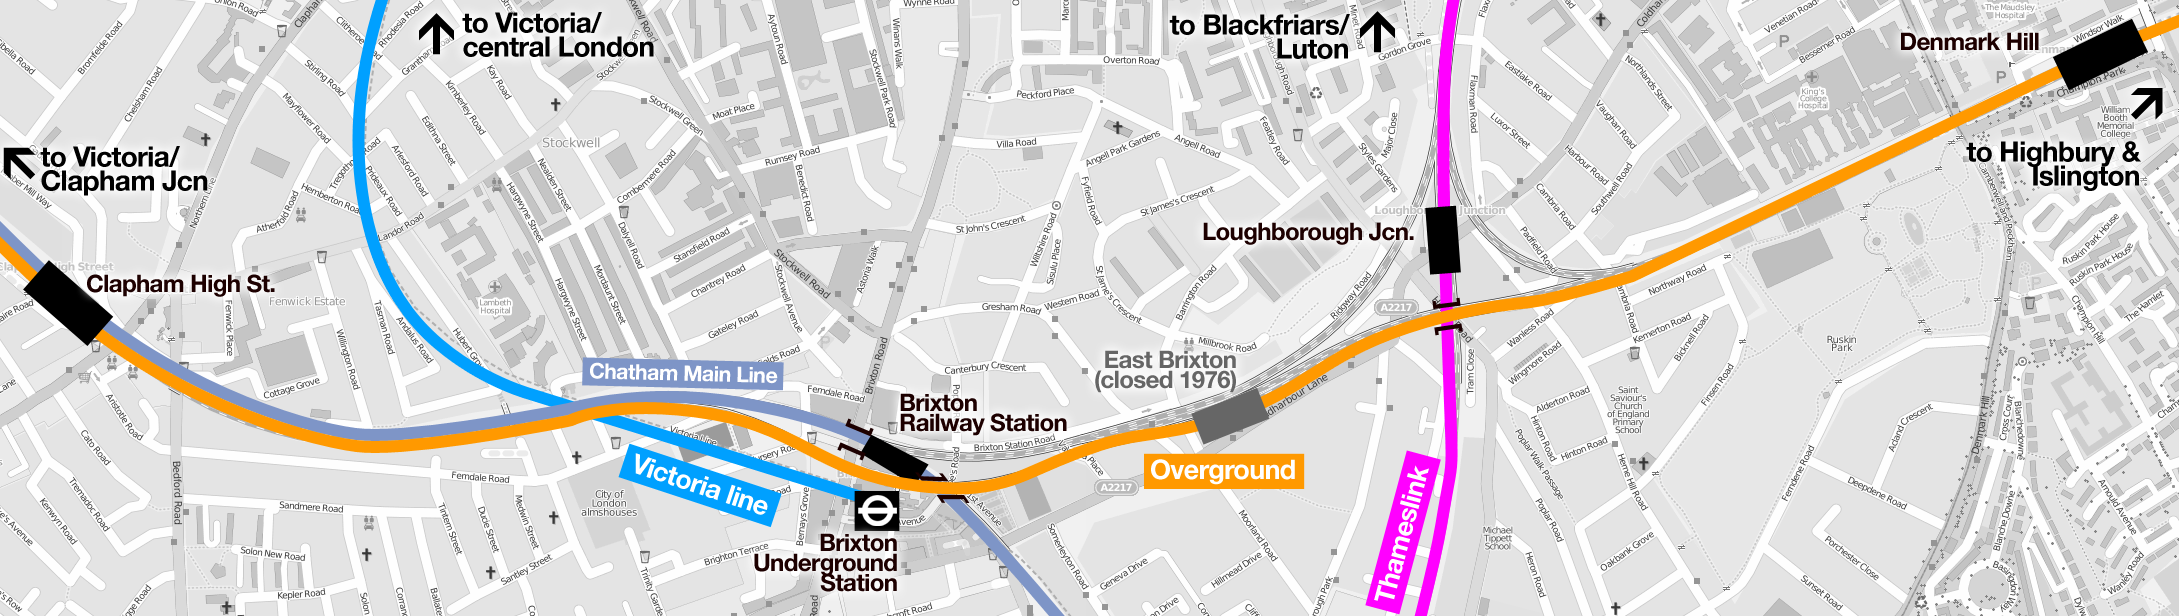 Could we see a new Overground station at Brixton or Loughborough